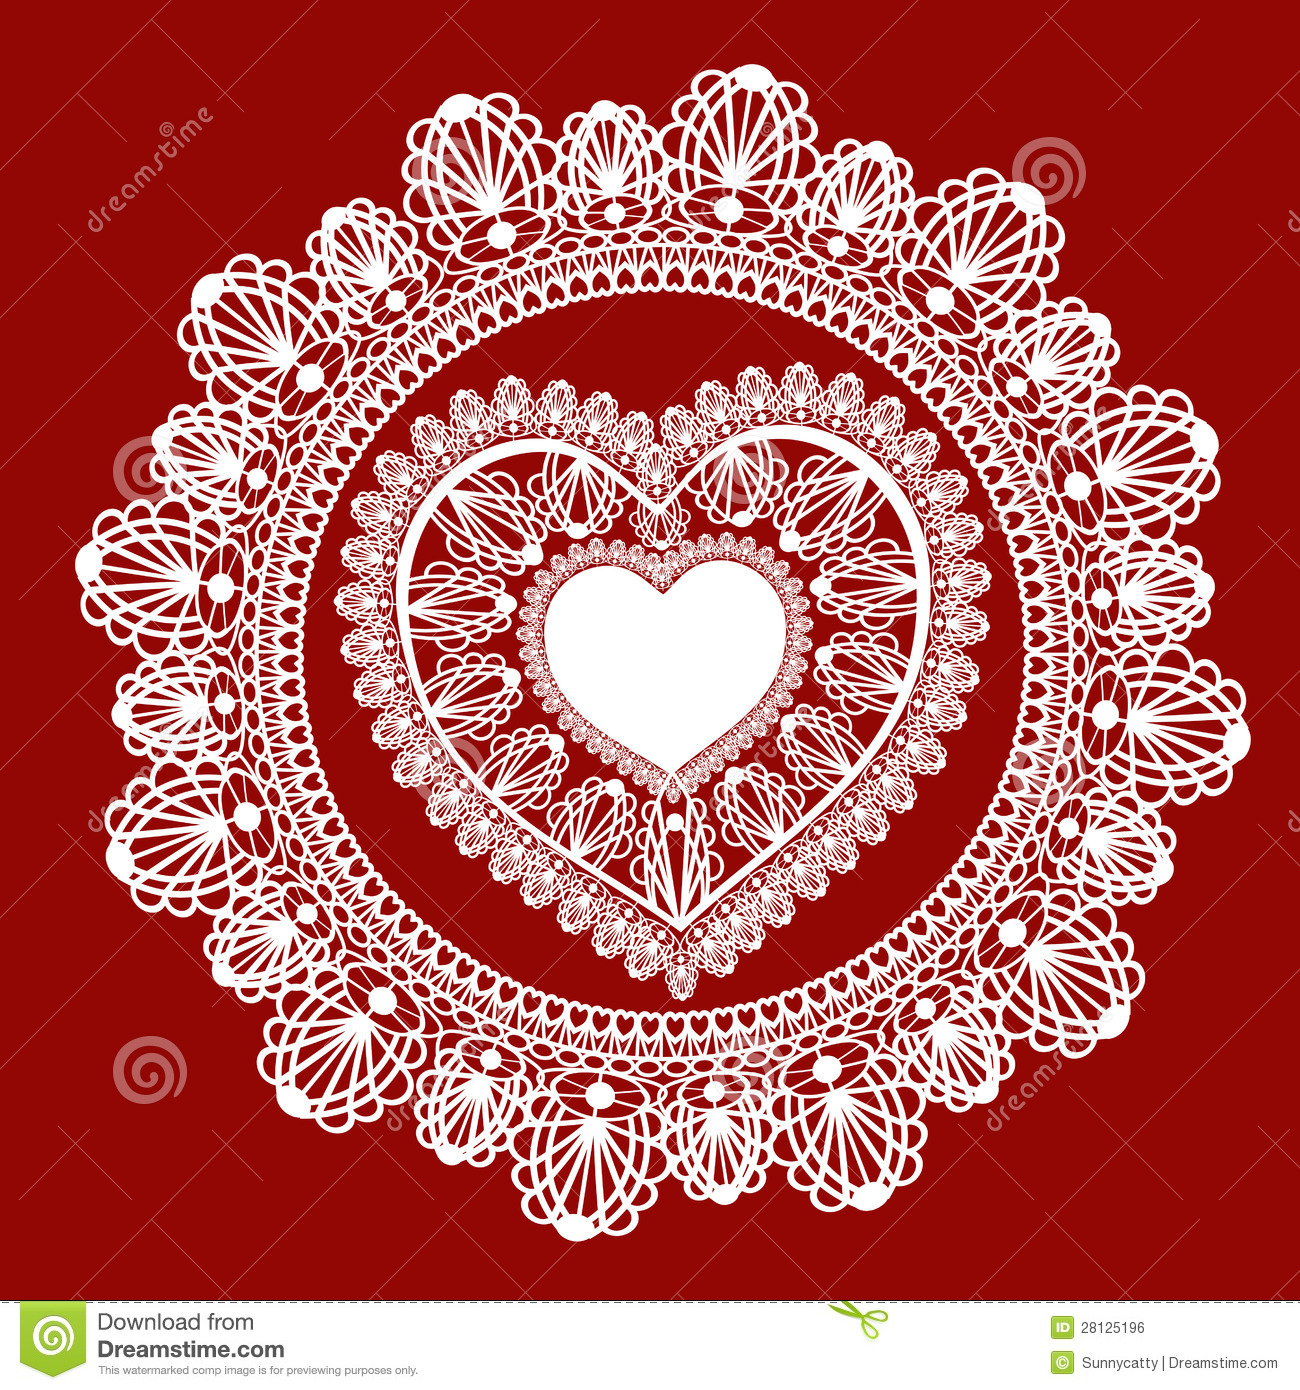 Lace Heart On Red Background Royalty Free Stock Image.